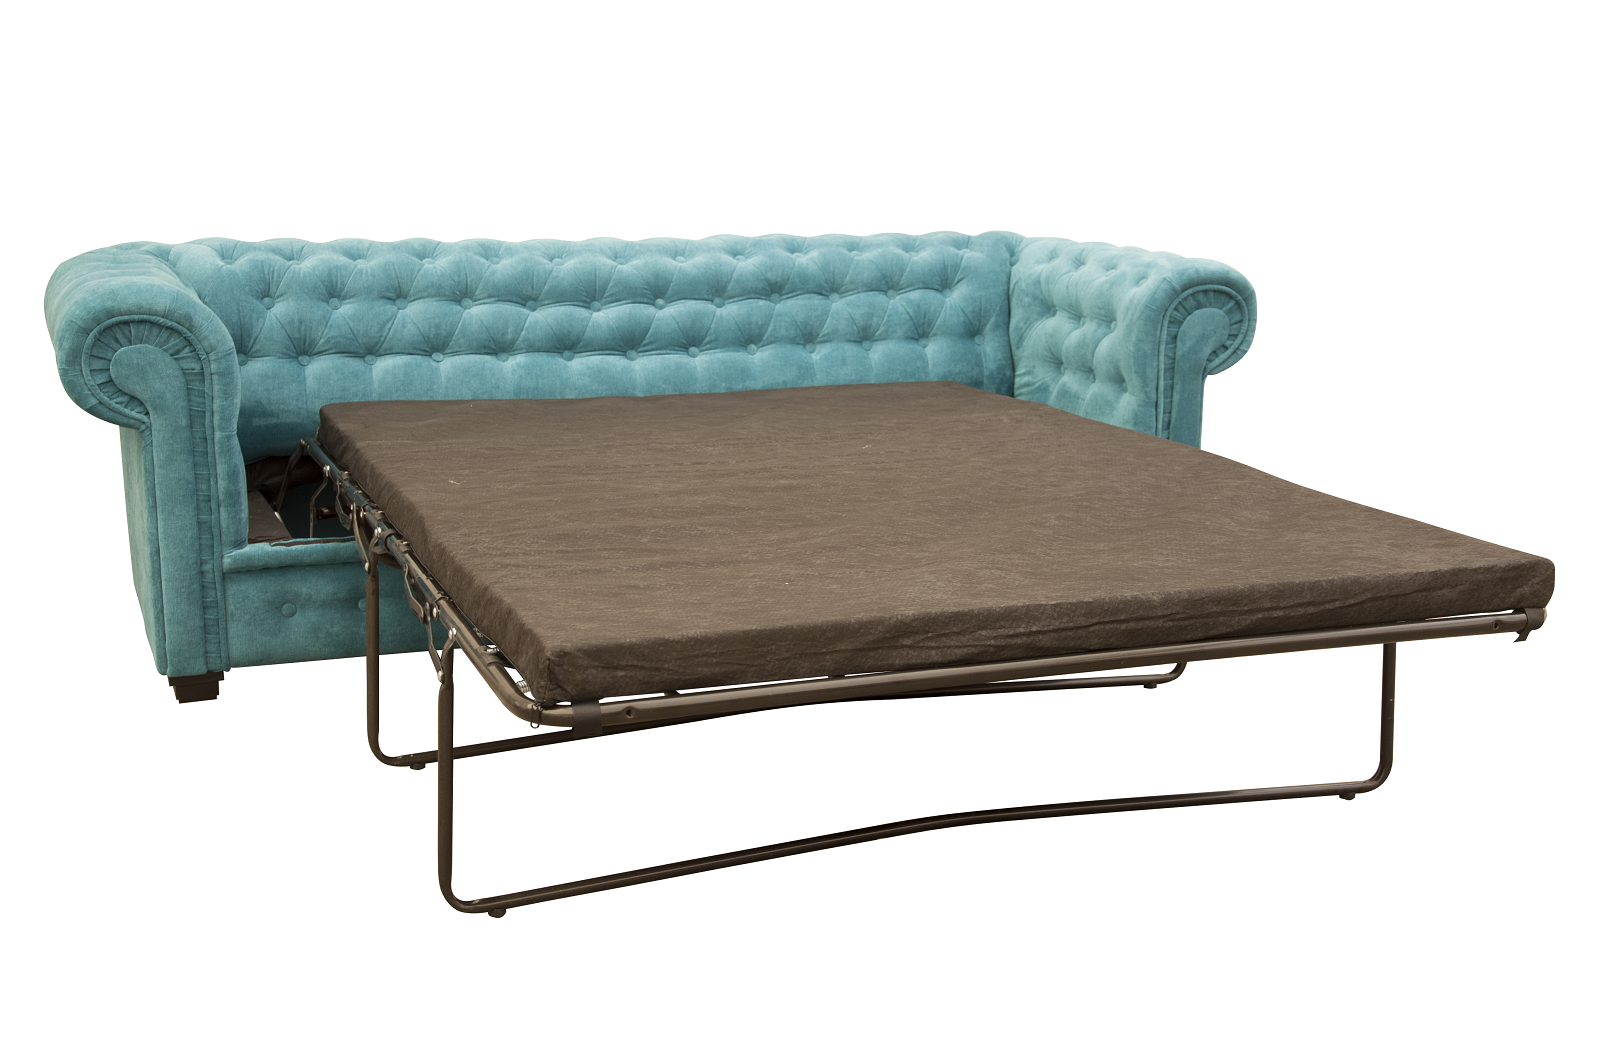 IMPERIAL 3 SEATER SOFA BED Fabric-1257